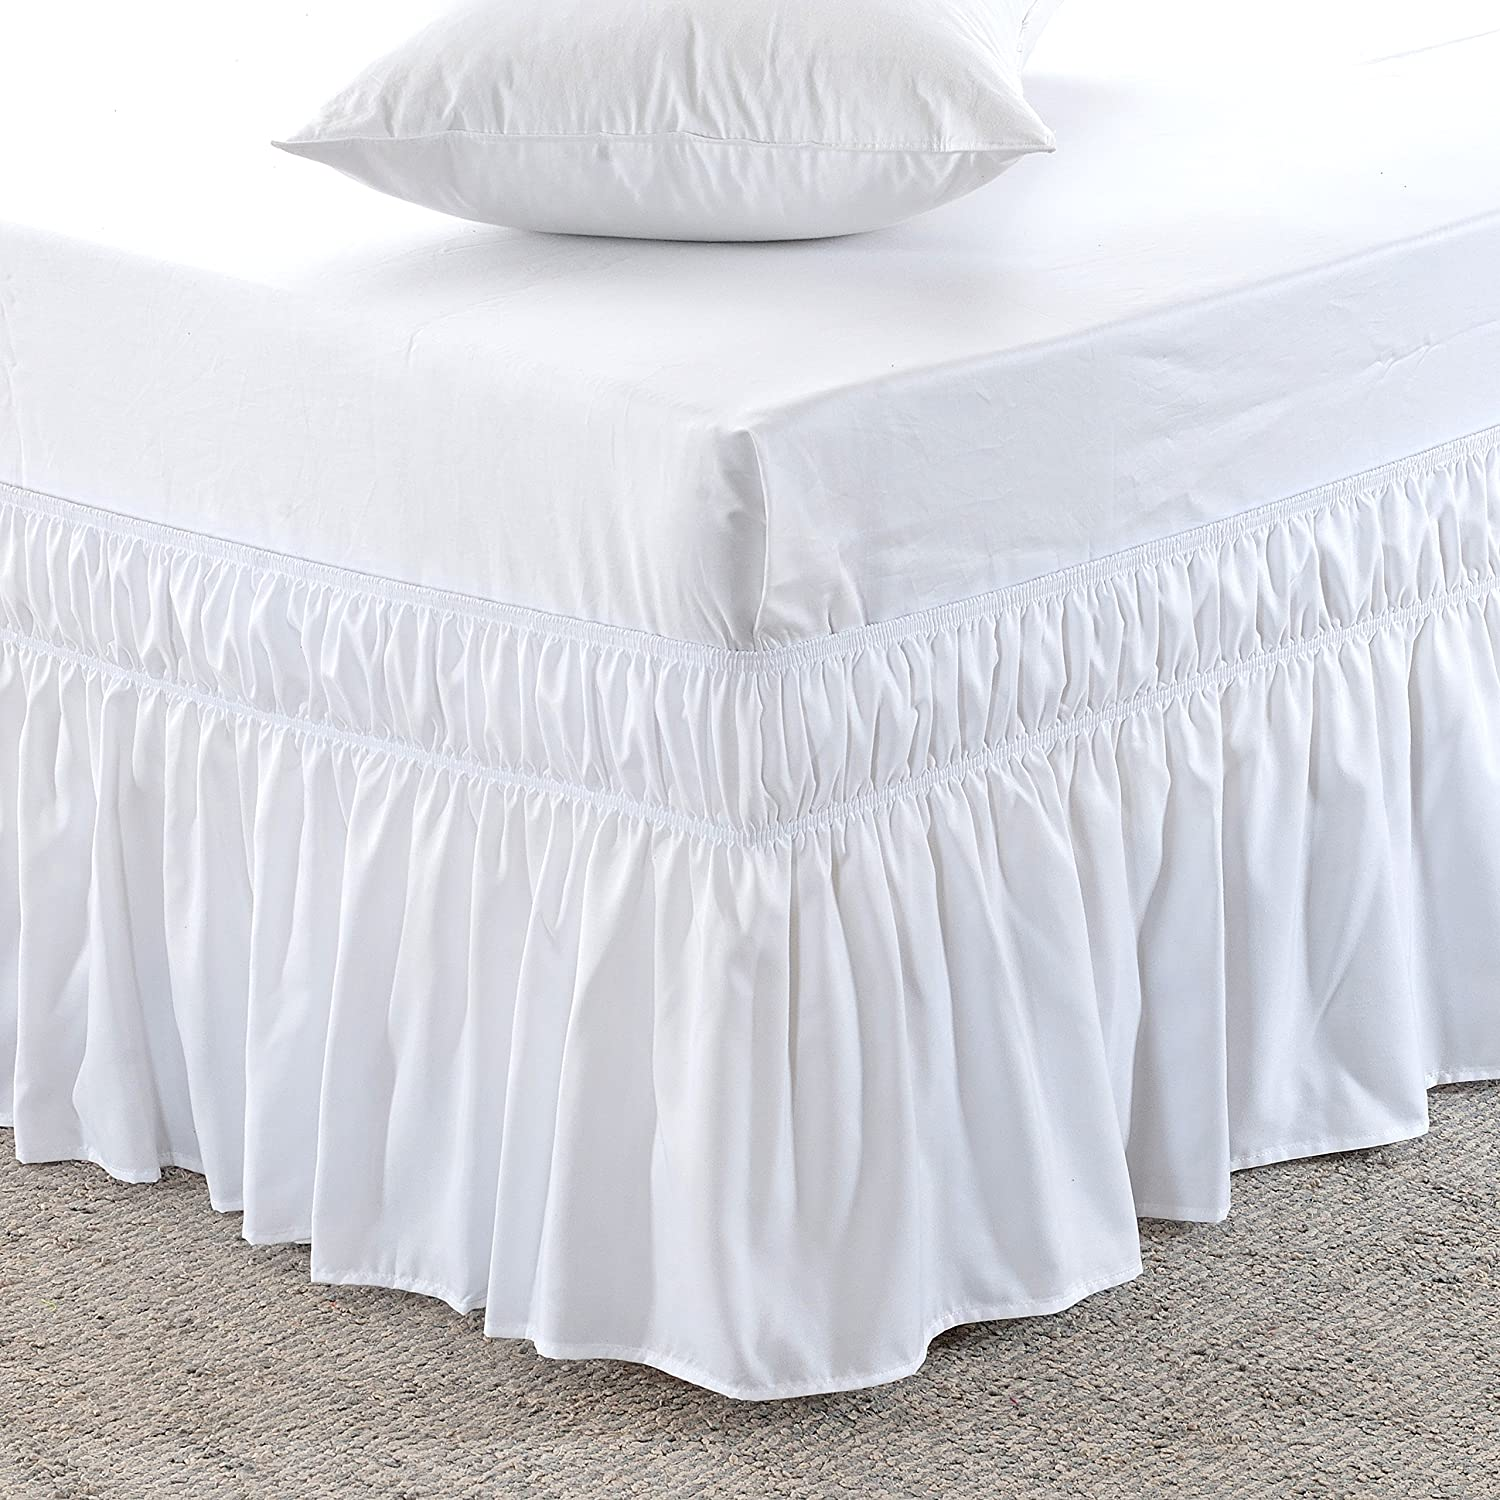 meila three fabric sides wrap around elastic solid bed skirt easy oneasy off dust ruffled bed skirts 16 inch tailored drop white queenking